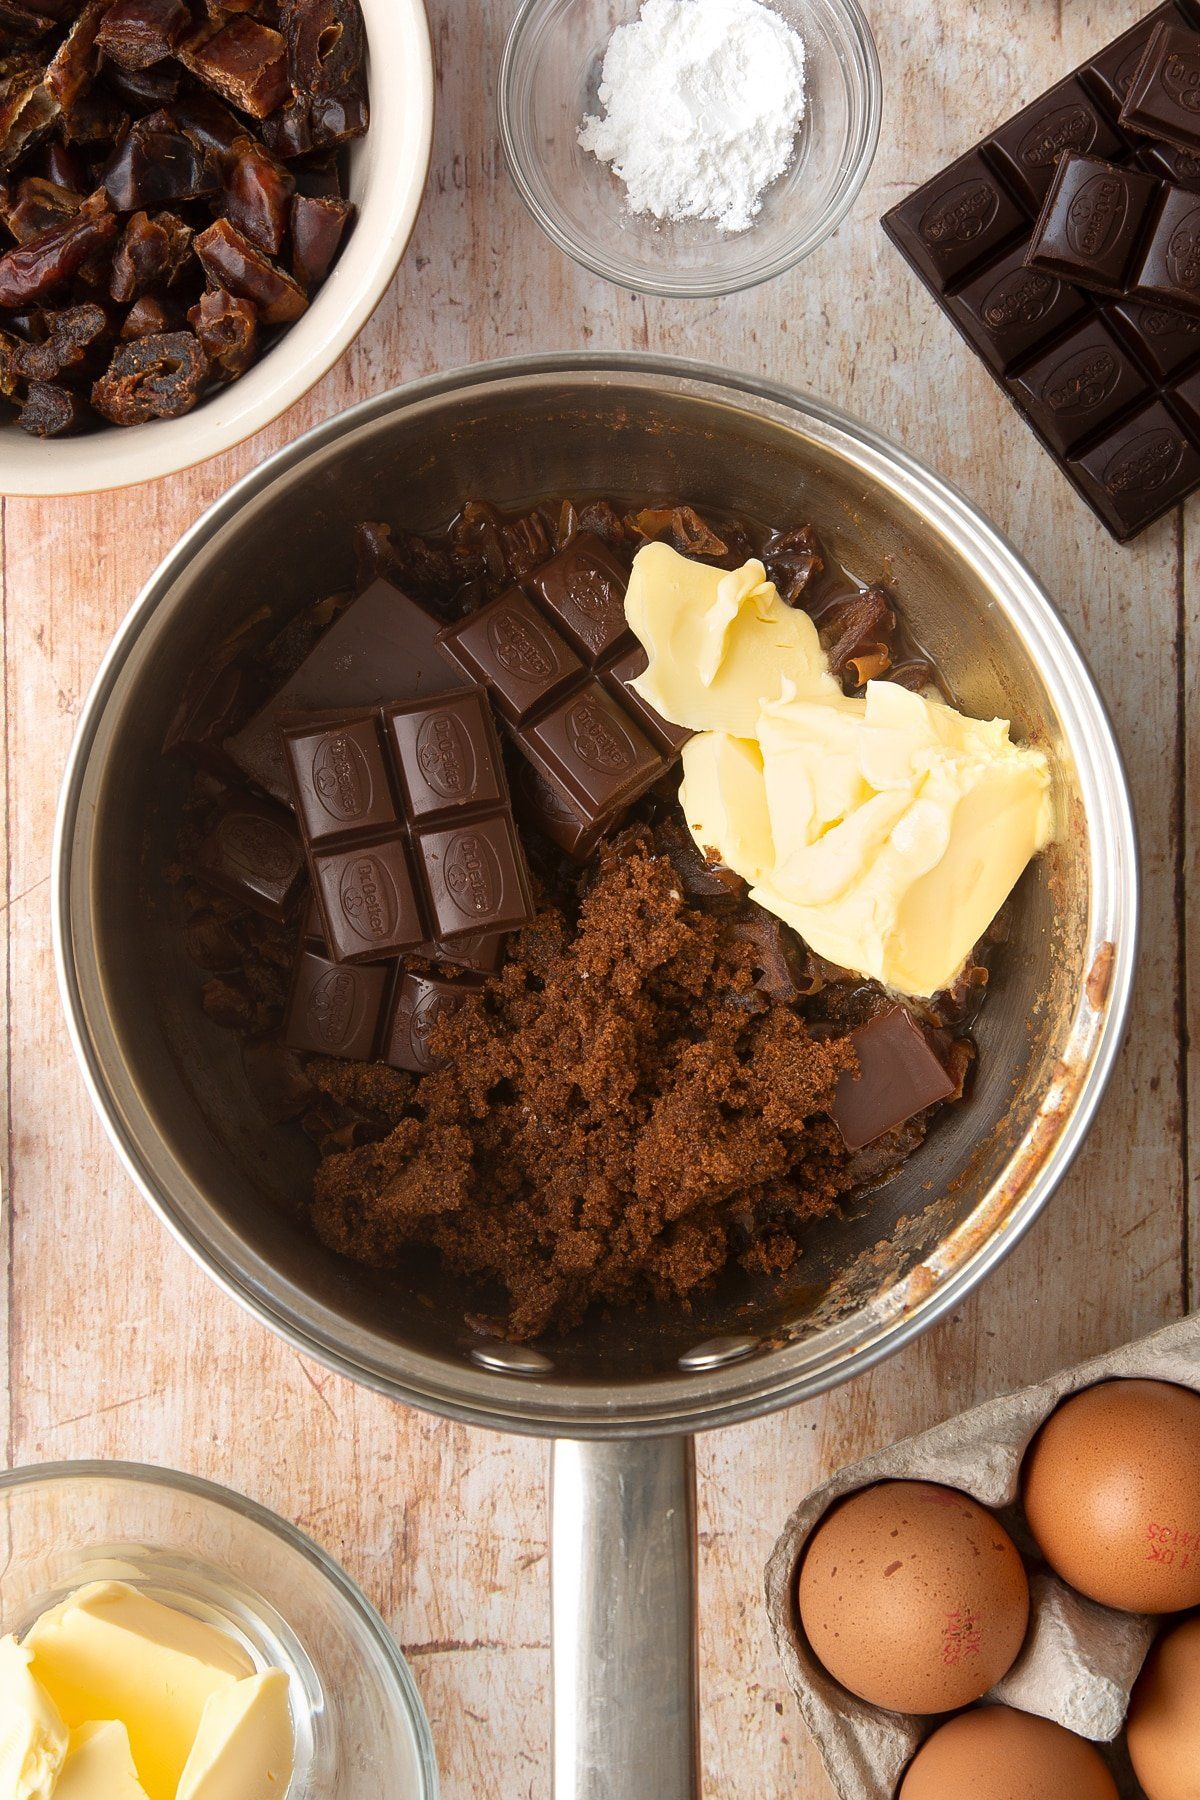 A sauce pan containing chopped dried dates simmered in water. On top sits butter, dark chocolate and sugar. Ingredients to make whole grain brownies surround the pan.